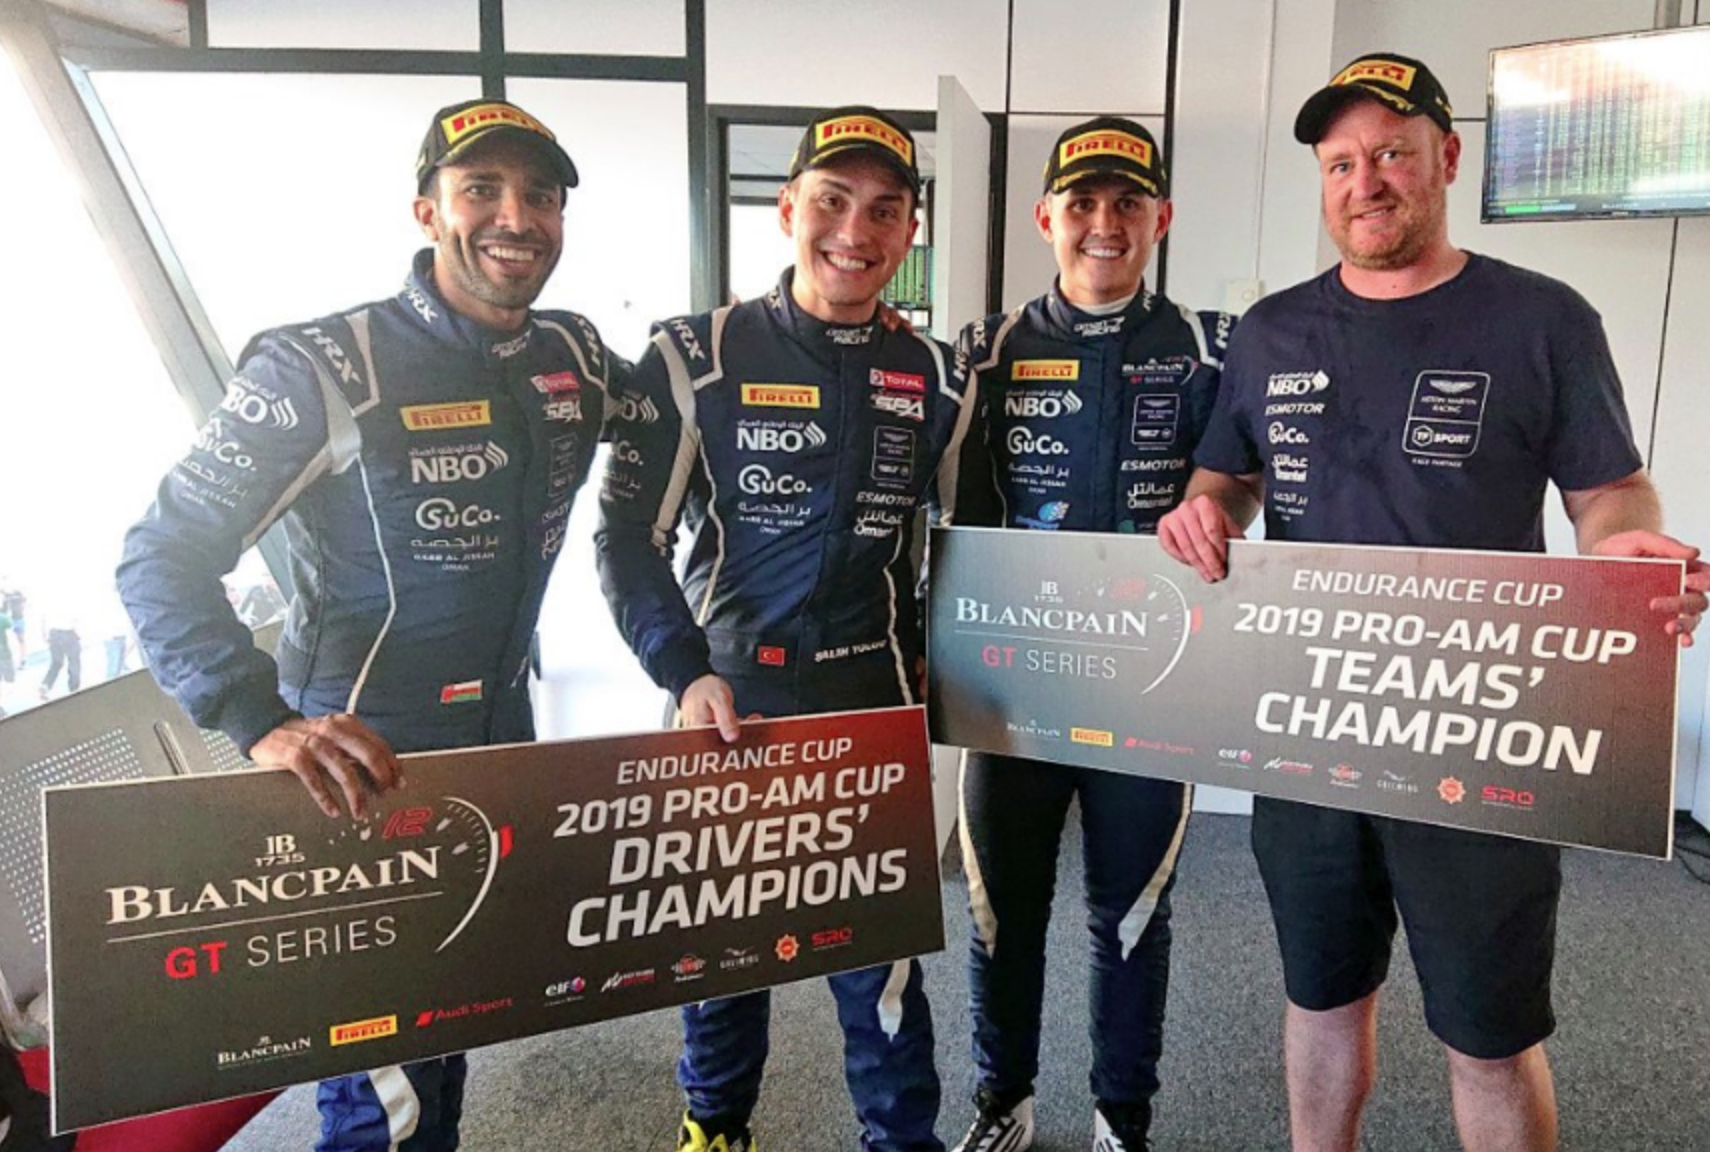 Charlie-Eastwood-Blancpain-Aston-Martin-TF-Sport.png